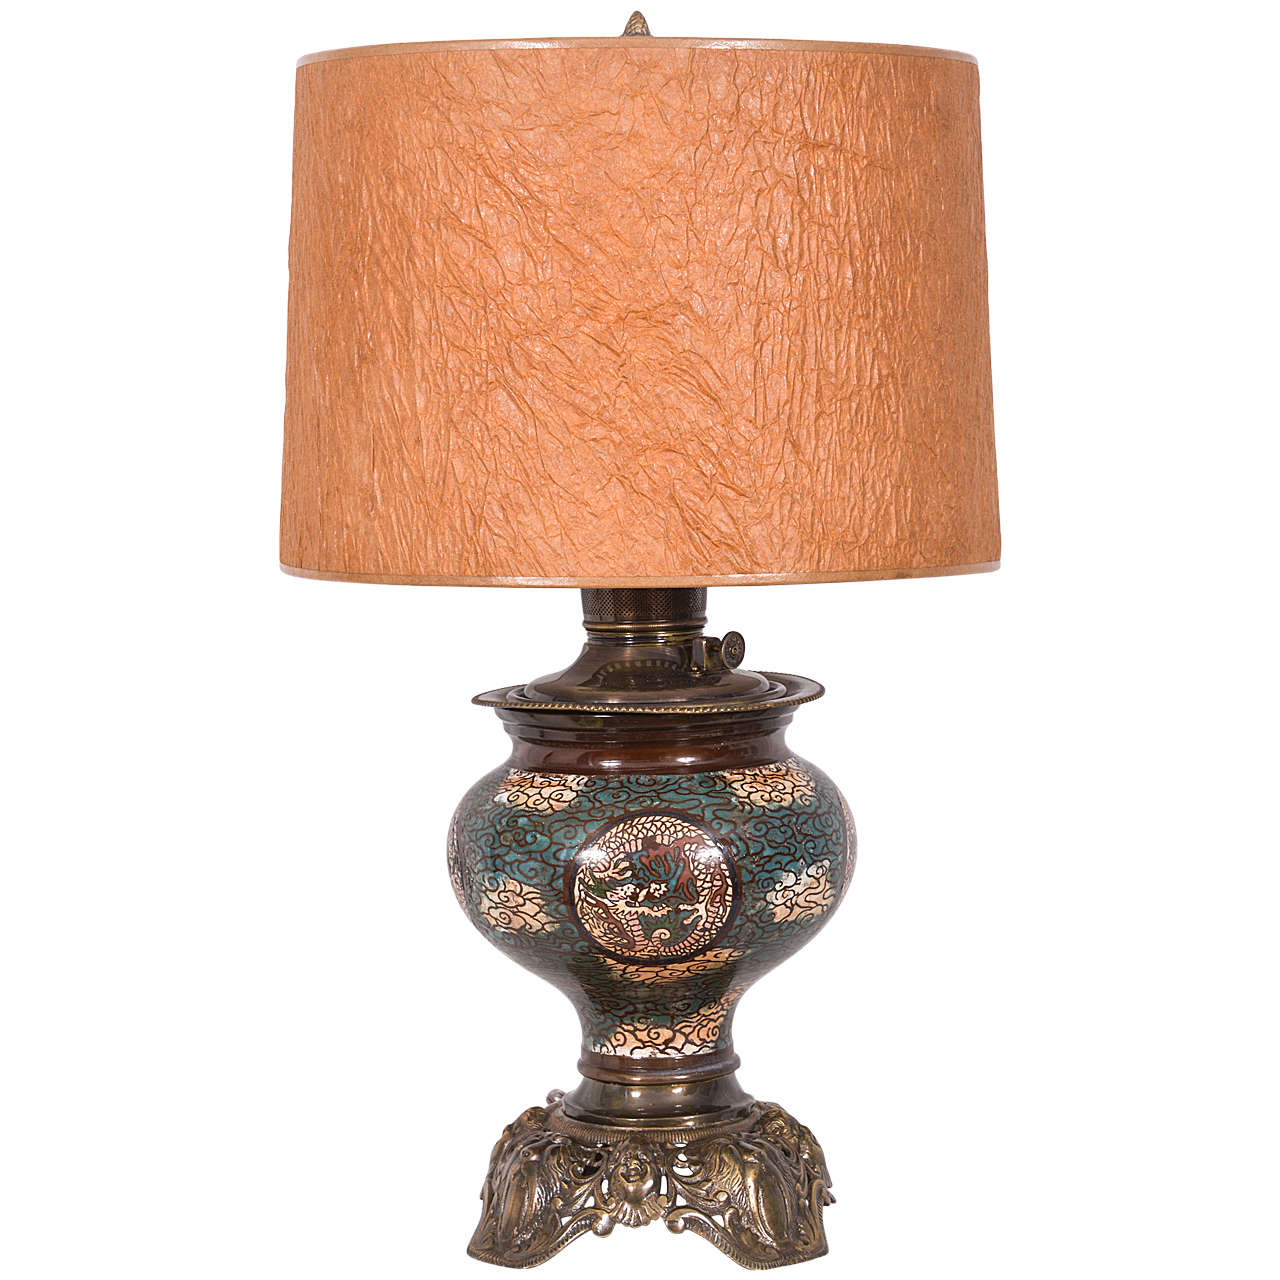 restored asian cloisonn electrified oil lamp for sale at 1stdibs. Black Bedroom Furniture Sets. Home Design Ideas